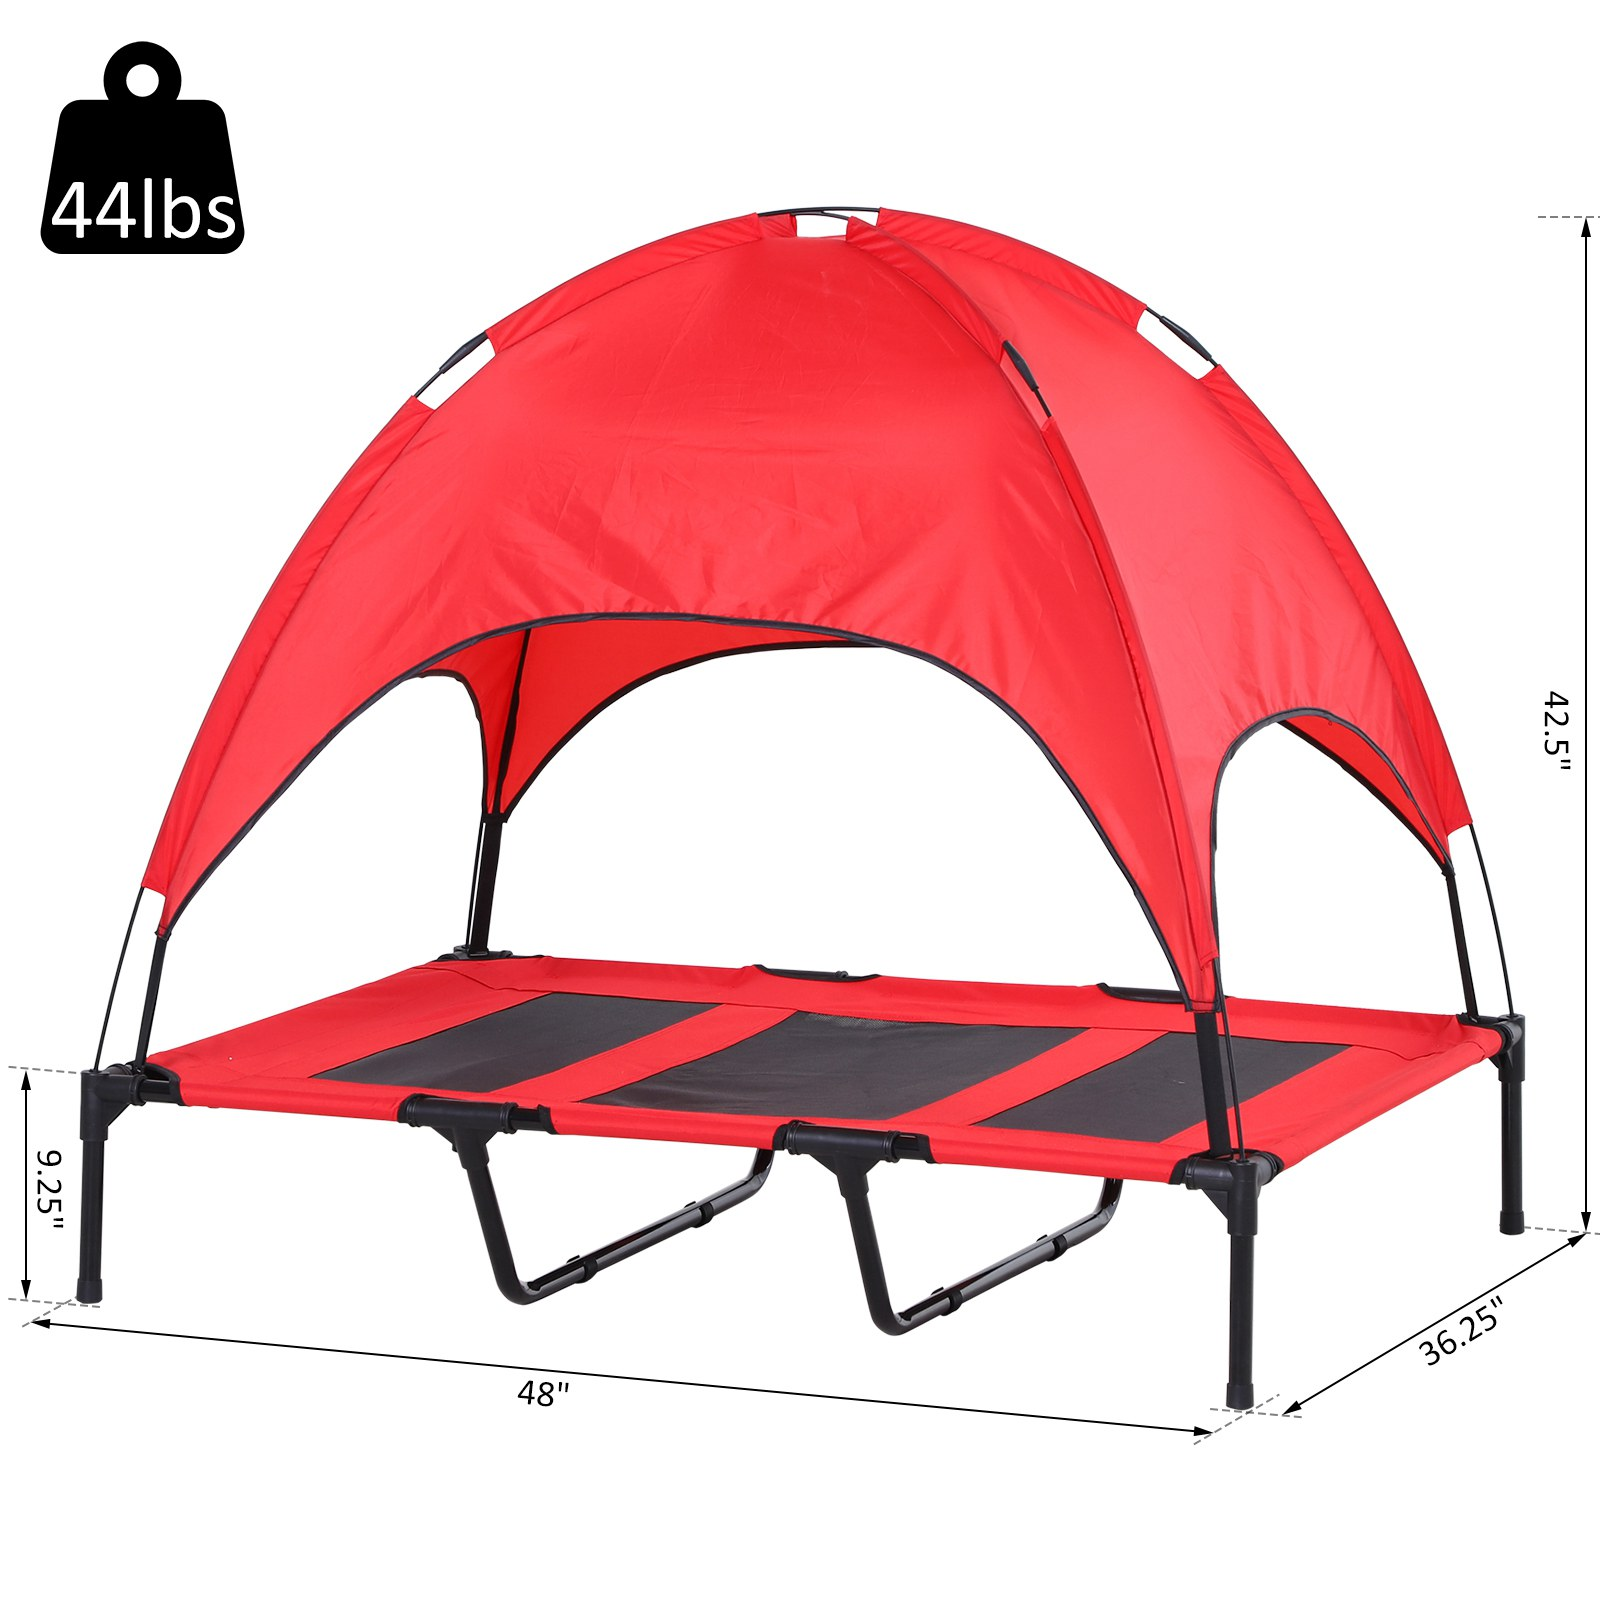 PawHut-Elevated-Pet-Bed-Dog-Foldable-Cot-Tent-Canopy thumbnail 17